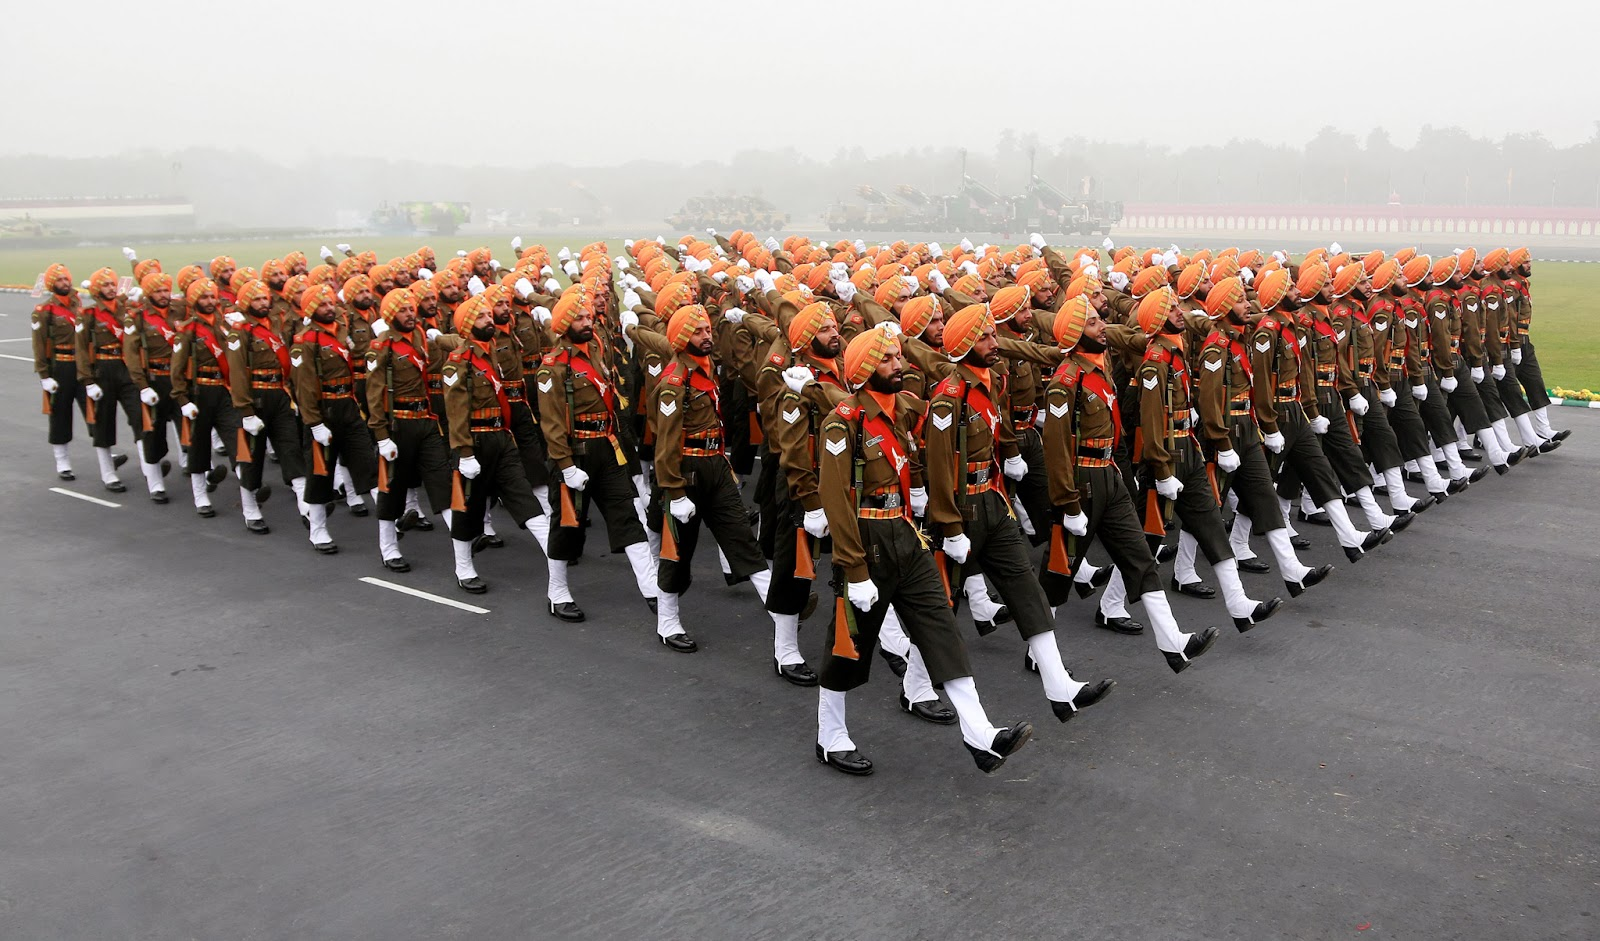 Indian Army Hd Wallpaper: ALL BEST HD WALPAPER: INDIAN ARMY HD WALLPAPERS